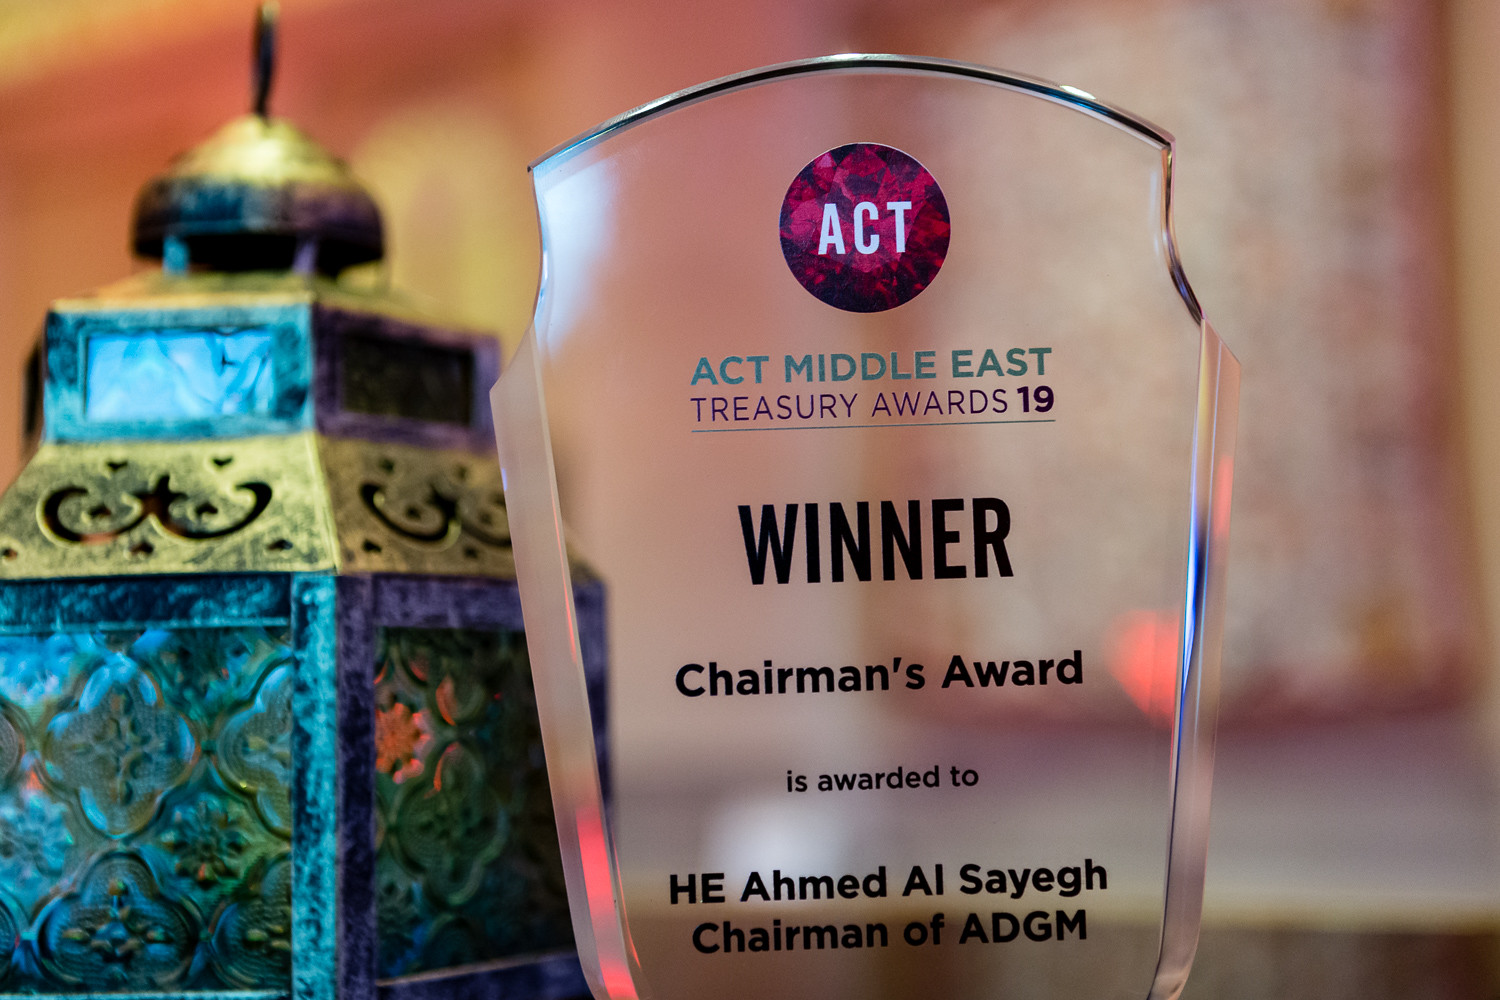 ACT Middle East Treasury Awards 2019